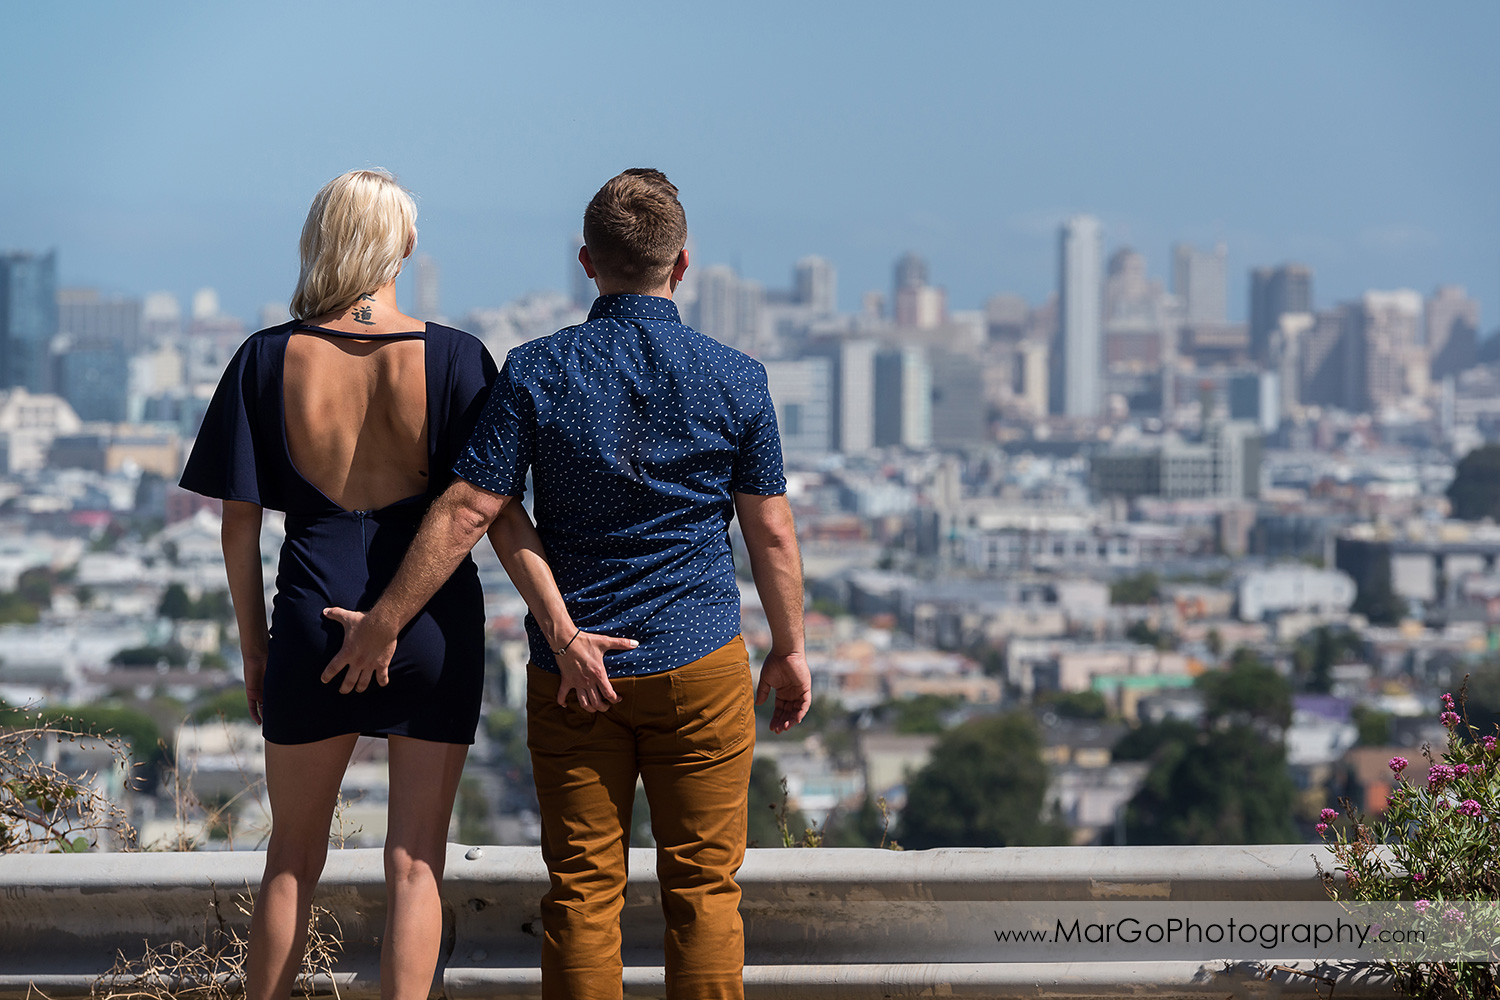 engagement session at Bernal Heights in San Francisco - rear view of cupule holding buts and looking at SF